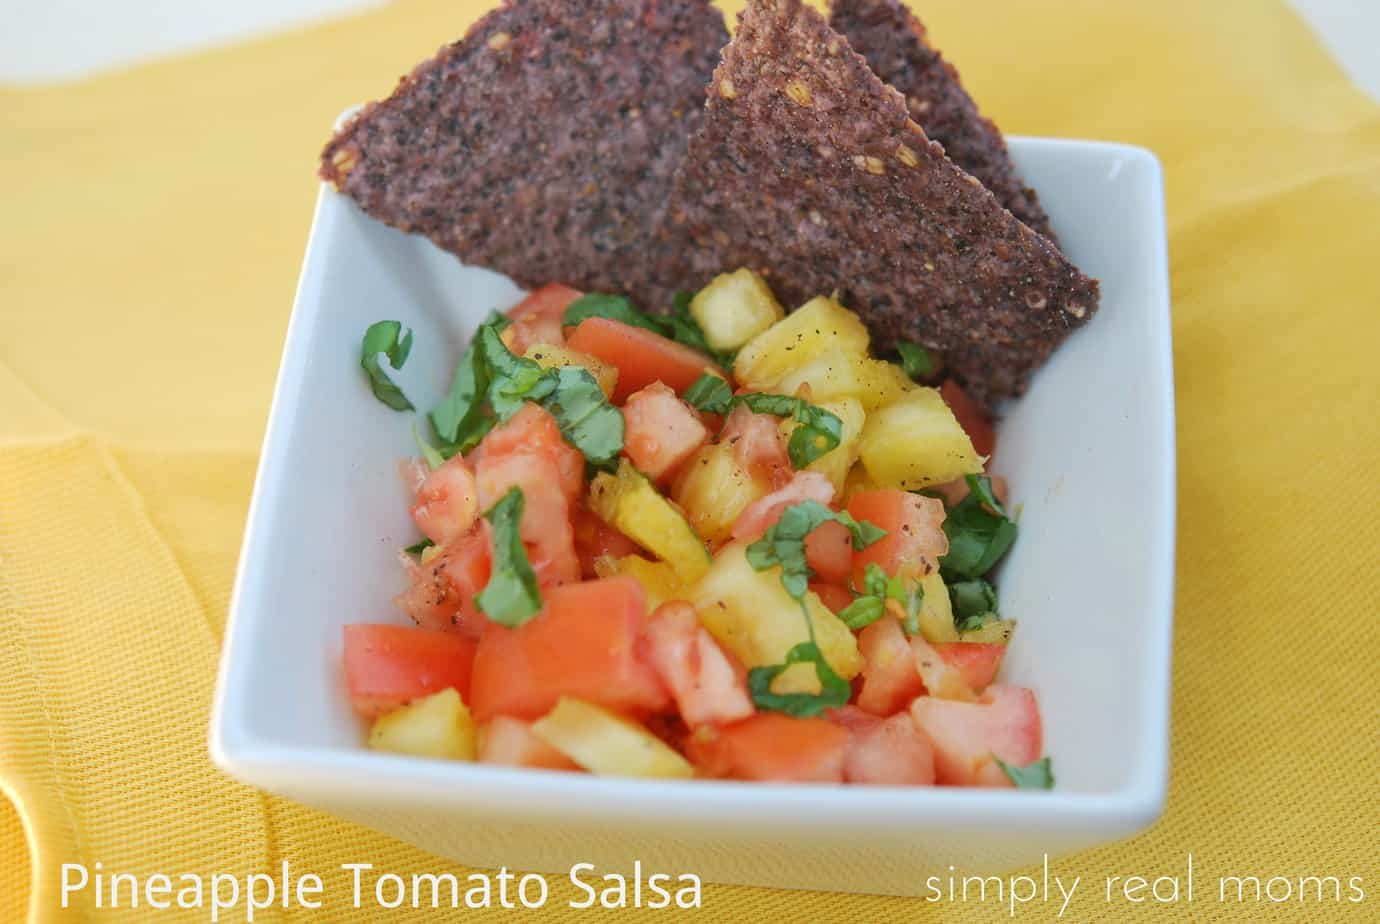 Pineapple Tomato Salsa—A New Spin on Garden Salsa 1